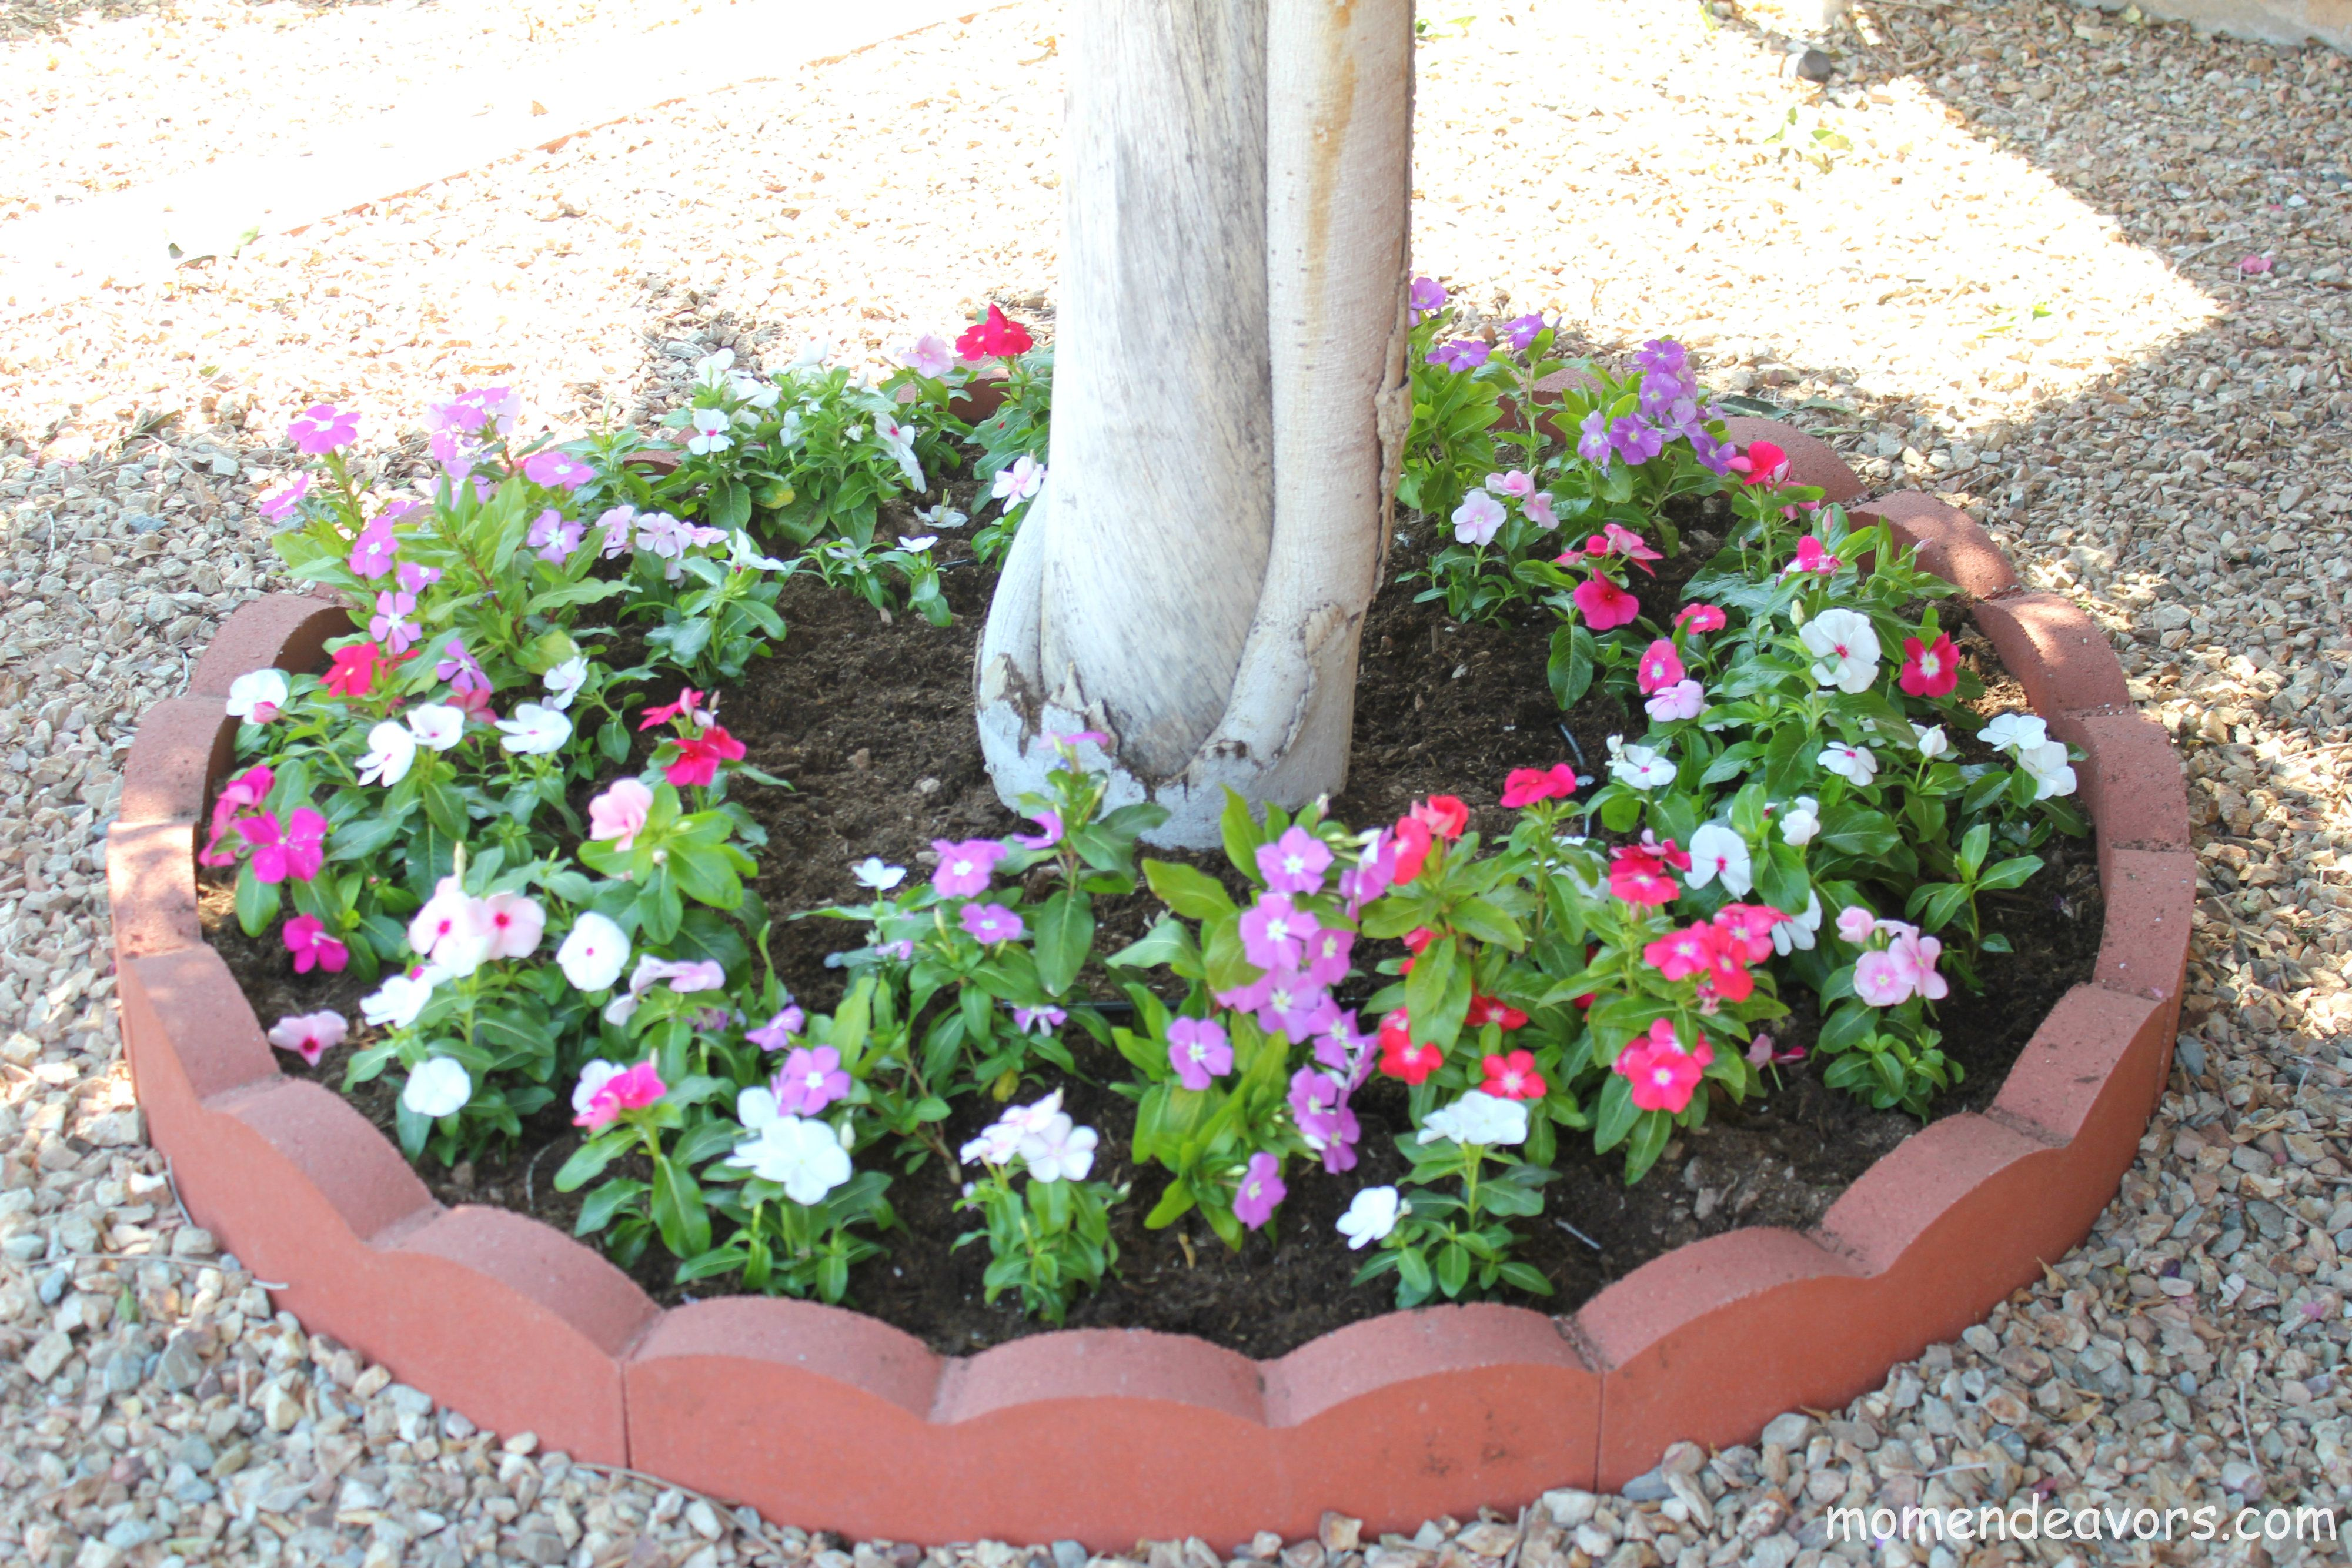 Diy Tree Ring Flower Planter Adding Curb Appeal On A Div Div Class Fileinfo 4000 X 2667 Jpeg 1410 Kb Div Div Div Div Class Item A Class Thumb Target Blank Href Https I Ytimg Com Vi Rl7xs5wlmui Maxresdefault Jpg H Id Images 5083 1 Div Class Cico Style Width 230px Height 170px Img Height 170 Width 230 Src Http Tse4 Mm Bing Net Th Id Oip Akaxba Sckahk3hjluhulghaek W 230 Amp H 170 Amp Rs 1 Amp Pcl Dddddd Amp O 5 Amp Pid 1 1 Alt Div A Div Class Meta A Class Tit Target Blank Href Https Www Youtube Com Watch V Rl7xs5wlmui H Id Images 5081 1 Www Youtube Com A Div Class Des Pavestone Rumblestone Tree Ring Youtube Div Div Class Fileinfo 1280 X 720 Jpeg 305 Kb Div Div Div Div Class Item A Class Thumb Target Blank Href Https I Pinimg Com Originals Eb 45 3a Eb453a8197341db1e9d88197170a1dd0 Jpg H Id Images 5089 1 Div Class Cico Style Width 230px Height 170px Img Height 170 Width 230 Src Http Tse3 Mm Bing Net Th Id Oip 1zaa Lwsytsn0l3lo22 Uwhae9 W 230 Amp H 170 Amp Rs 1 Amp Pcl Dddddd Amp O 5 Amp Pid 1 1 Alt Div A Div Class Meta A Class Tit Target Blank Href Https Www Pinterest Co Uk Pin 505599495643607888 H Id Images 5087 1 Www Pinterest Co Uk A Div Class Des Diy How To Create A Curved Raised Garden Bed The Cut In Div Div Class Fileinfo 475 X 318 Jpeg 41 Kb Div Div Div Div Class Item A Class Thumb Target Blank Href Https I Ytimg Com Vi Nsc0osi8rhe Hqdefault Jpg H Id Images 5095 1 Div Class Cico Style Width 230px Height 170px Img Height 170 Width 230 Src Http Tse2 Mm Bing Net Th Id Oip Wd6igfxg78scycqld T1 Ahafj W 230 Amp H 170 Amp Rs 1 Amp Pcl Dddddd Amp O 5 Amp Pid 1 1 Alt Div A Div Class Meta A Class Tit Target Blank Href Https Www Youtube Com Watch V Nsc0osi8rhe H Id Images 5093 1 Www Youtube Com A Div Class Des How To Build A Retaining Wall Youtube Div Div Class Fileinfo 480 X 360 Jpeg 33 Kb Div Div Div Div Div Class Row Div Class Item A Class Thumb Target Blank Href Https M1 Paperblog Com I 69 698427 Plantar Macizos O Canteros L 5rhdh Jpeg H Id Images 5101 1 Div Class Cico Style Width 230px Height 170px Img Height 170 Width 230 Src Http Tse1 Mm Bing Net Th Id Oip T3c5raml54zys3 550w2ahafj W 230 Amp H 170 Amp Rs 1 Amp Pcl Dddddd Amp O 5 Amp Pid 1 1 Alt Div A Div Class Meta A Class Tit Target Blank Href Https Es Paperblog Com Plantar En Macizos O Canteros 698427 H Id Images 5099 1 Es Paperblog Com A Div Class Des Plantar En Macizos O Canteros Paperblog Div Div Class Fileinfo 320 X 240 Jpeg 28 Kb Div Div Div Div Class Item A Class Thumb Target Blank Href Https Www Belgard Com Sites Default Files Styles Hero Slide 1366x600 Public 2017 12 Screen 20shot 202017 12 19 20at 202 45 15 20pm Png Itok E781z7vo H Id Images 5107 1 Div Class Cico Style Width 230px Height 170px Img Height 170 Width 230 Src Http Tse1 Mm Bing Net Th Id Oip Xcbdnfdiyr9q8nfrrrjhjqhadq W 230 Amp H 170 Amp Rs 1 Amp Pcl Dddddd Amp O 5 Amp Pid 1 1 Alt Div A Div Class Meta A Class Tit Target Blank Href Https Www Belgard Com Products Retaining Walls Aspen Stoner H Id Images 5105 1 Www Belgard Com A Div Class Des Anchor Aspen Stone Wall Blocks For Low Height Retaining Walls Div Div Class Fileinfo 1366 X 600 Png 1367 Kb Div Div Div Div Class Item A Class Thumb Target Blank Href Https Www Landmarkpro Com Au Wp Content Uploads Planter Box Square3 Jpg H Id Images 5113 1 Div Class Cico Style Width 230px Height 170px Img Height 170 Width 230 Src Http Tse4 Mm Bing Net Th Id Oip Otmmqxf5rcah2aenri21wqhaha W 230 Amp H 170 Amp Rs 1 Amp Pcl Dddddd Amp O 5 Amp Pid 1 1 Alt Div A Div Class Meta A Class Tit Target Blank Href Https Www Landmarkpro Com Au Product Square Planter Box H Id Images 5111 1 Www Landmarkpro Com Au A Div Class Des Square Planter Box Landmark Products Div Div Class Fileinfo 550 X 550 Jpeg 44 Kb Div Div Div Div Class Item A Class Thumb Target Blank Href Http Www Designerplanters Co Uk Rai Jpg H Id Images 5119 1 Div Class Cico Style Width 230px Height 170px Img Height 170 Width 230 Src Http Tse2 Mm Bing Net Th Id Oip I7esegi7yojihkb5m7ofighafp W 230 Amp H 170 Amp Rs 1 Amp Pcl Dddddd Amp O 5 Amp Pid 1 1 Alt Div A Div Class Meta A Class Tit Target Blank Href Http Www Designerplanters Co Uk Rainbow Htm H Id Images 5117 1 Www Designerplanters Co Uk A Div Class Des Rainbow Coloured Ceramic Planters And Plant Containers Div Div Class Fileinfo 350 X 267 Jpeg 7 Kb Div Div Div Div Div Class Row Div Class Item A Class Thumb Target Blank Href Https Www Rynolawncare Com Wp Content Uploads 2013 03 40545420 Xxl Jpg H Id Images 5125 1 Div Class Cico Style Width 230px Height 170px Img Height 170 Width 230 Src Http Tse2 Mm Bing Net Th Id Oip Pmhpmmzwjeiagejt Fmutahae8 W 230 Amp H 170 Amp Rs 1 Amp Pcl Dddddd Amp O 5 Amp Pid 1 1 Alt Div A Div Class Meta A Class Tit Target Blank Href Https Www Rynolawncare Com Fix Flower Bed Full Weeds H Id Images 5123 1 Www Rynolawncare Com A Div Class Des How To Fix A Flower Bed Full Of Weeds Ryno Lawn Care Llc Div Div Class Fileinfo 1382 X 922 Jpeg 664 Kb Div Div Div Div Class Item A Class Thumb Target Blank Href Http Www Surelocedging Com Img Scape12 Jpg H Id Images 5131 1 Div Class Cico Style Width 230px Height 170px Img Height 170 Width 230 Src Http Tse4 Mm Bing Net Th Id Oip Mvdwziw1g73a4c9ir Jxtwhae9 W 230 Amp H 170 Amp Rs 1 Amp Pcl Dddddd Amp O 5 Amp Pid 1 1 Alt Div A Div Class Meta A Class Tit Target Blank Href Http Www Surelocedging Com Aluminum Edging Php H Id Images 5129 1 Www Surelocedging Com A Div Class Des Sure Loc Edging Aluminum Edging Div Div Class Fileinfo 900 X 602 Jpeg 87 Kb Div Div Div Div Class Item A Class Thumb Target Blank Href Http Www Fantasticviewpoint Com Wp Content Uploads 2017 01 Fire Pit And Seating Wall 10939 950 632 634x422 Jpg H Id Images 5137 1 Div Class Cico Style Width 230px Height 170px Img Height 170 Width 230 Src Http Tse1 Mm Bing Net Th Id Oip Spp20190 Af V2znba3pvghae7 W 230 Amp H 170 Amp Rs 1 Amp Pcl Dddddd Amp O 5 Amp Pid 1 1 Alt Div A Div Class Meta A Class Tit Target Blank Href Http Www Fantasticviewpoint Com 17 Of The Most Amazing Seating Area Around The Fire Pit Ever H Id Images 5135 1 Www Fantasticviewpoint Com A Div Class Des 17 Of The Most Amazing Seating Area Around The Fire Pit Ever Div Div Class Fileinfo 634 X 422 Jpeg 70 Kb Div Div Div Div Class Item A Class Thumb Target Blank Href Https Melbourne Landscaping Net Au Wp Content Uploads 2016 06 Plant Selection At Wholesalers Jpg H Id Images 5143 1 Div Class Cico Style Width 230px Height 170px Img Height 170 Width 230 Src Http Tse1 Mm Bing Net Th Id Oip 6slu6nbacol28ws3r7bpgahafj W 230 Amp H 170 Amp Rs 1 Amp Pcl Dddddd Amp O 5 Amp Pid 1 1 Alt Div A Div Class Meta A Class Tit Target Blank Href Https Melbourne Landscaping Net Au Plant Sourcing Selection H Id Images 5141 1 Melbourne Landscaping Net Au A Div Class Des Plant Sourcing And Selection Melbourne Landscaping Div Div Class Fileinfo 1071 X 803 Jpeg 286 Kb Div Div Div Div Div Class Row Div Class Item A Class Thumb Target Blank Href Https Www Fabmood Com Wp Content Uploads 2016 06 Greenery Wedding Chandeliers Jpg H Id Images 5149 1 Div Class Cico Style Width 230px Height 170px Img Height 170 Width 230 Src Http Tse4 Mm Bing Net Th Id Oip 9tz8kujssbmpjigqajwdzwhaj4 W 230 Amp H 170 Amp Rs 1 Amp Pcl Dddddd Amp O 5 Amp Pid 1 1 Alt Div A Div Class Meta A Class Tit Target Blank Href Https Www Fabmood Com Greenery Wedding Chandeliers Elegant Wedding H Id Images 5147 1 Www Fabmood Com A Div Class Des Greenery Wedding Chandeliers Whimsical To Elegant Wedding